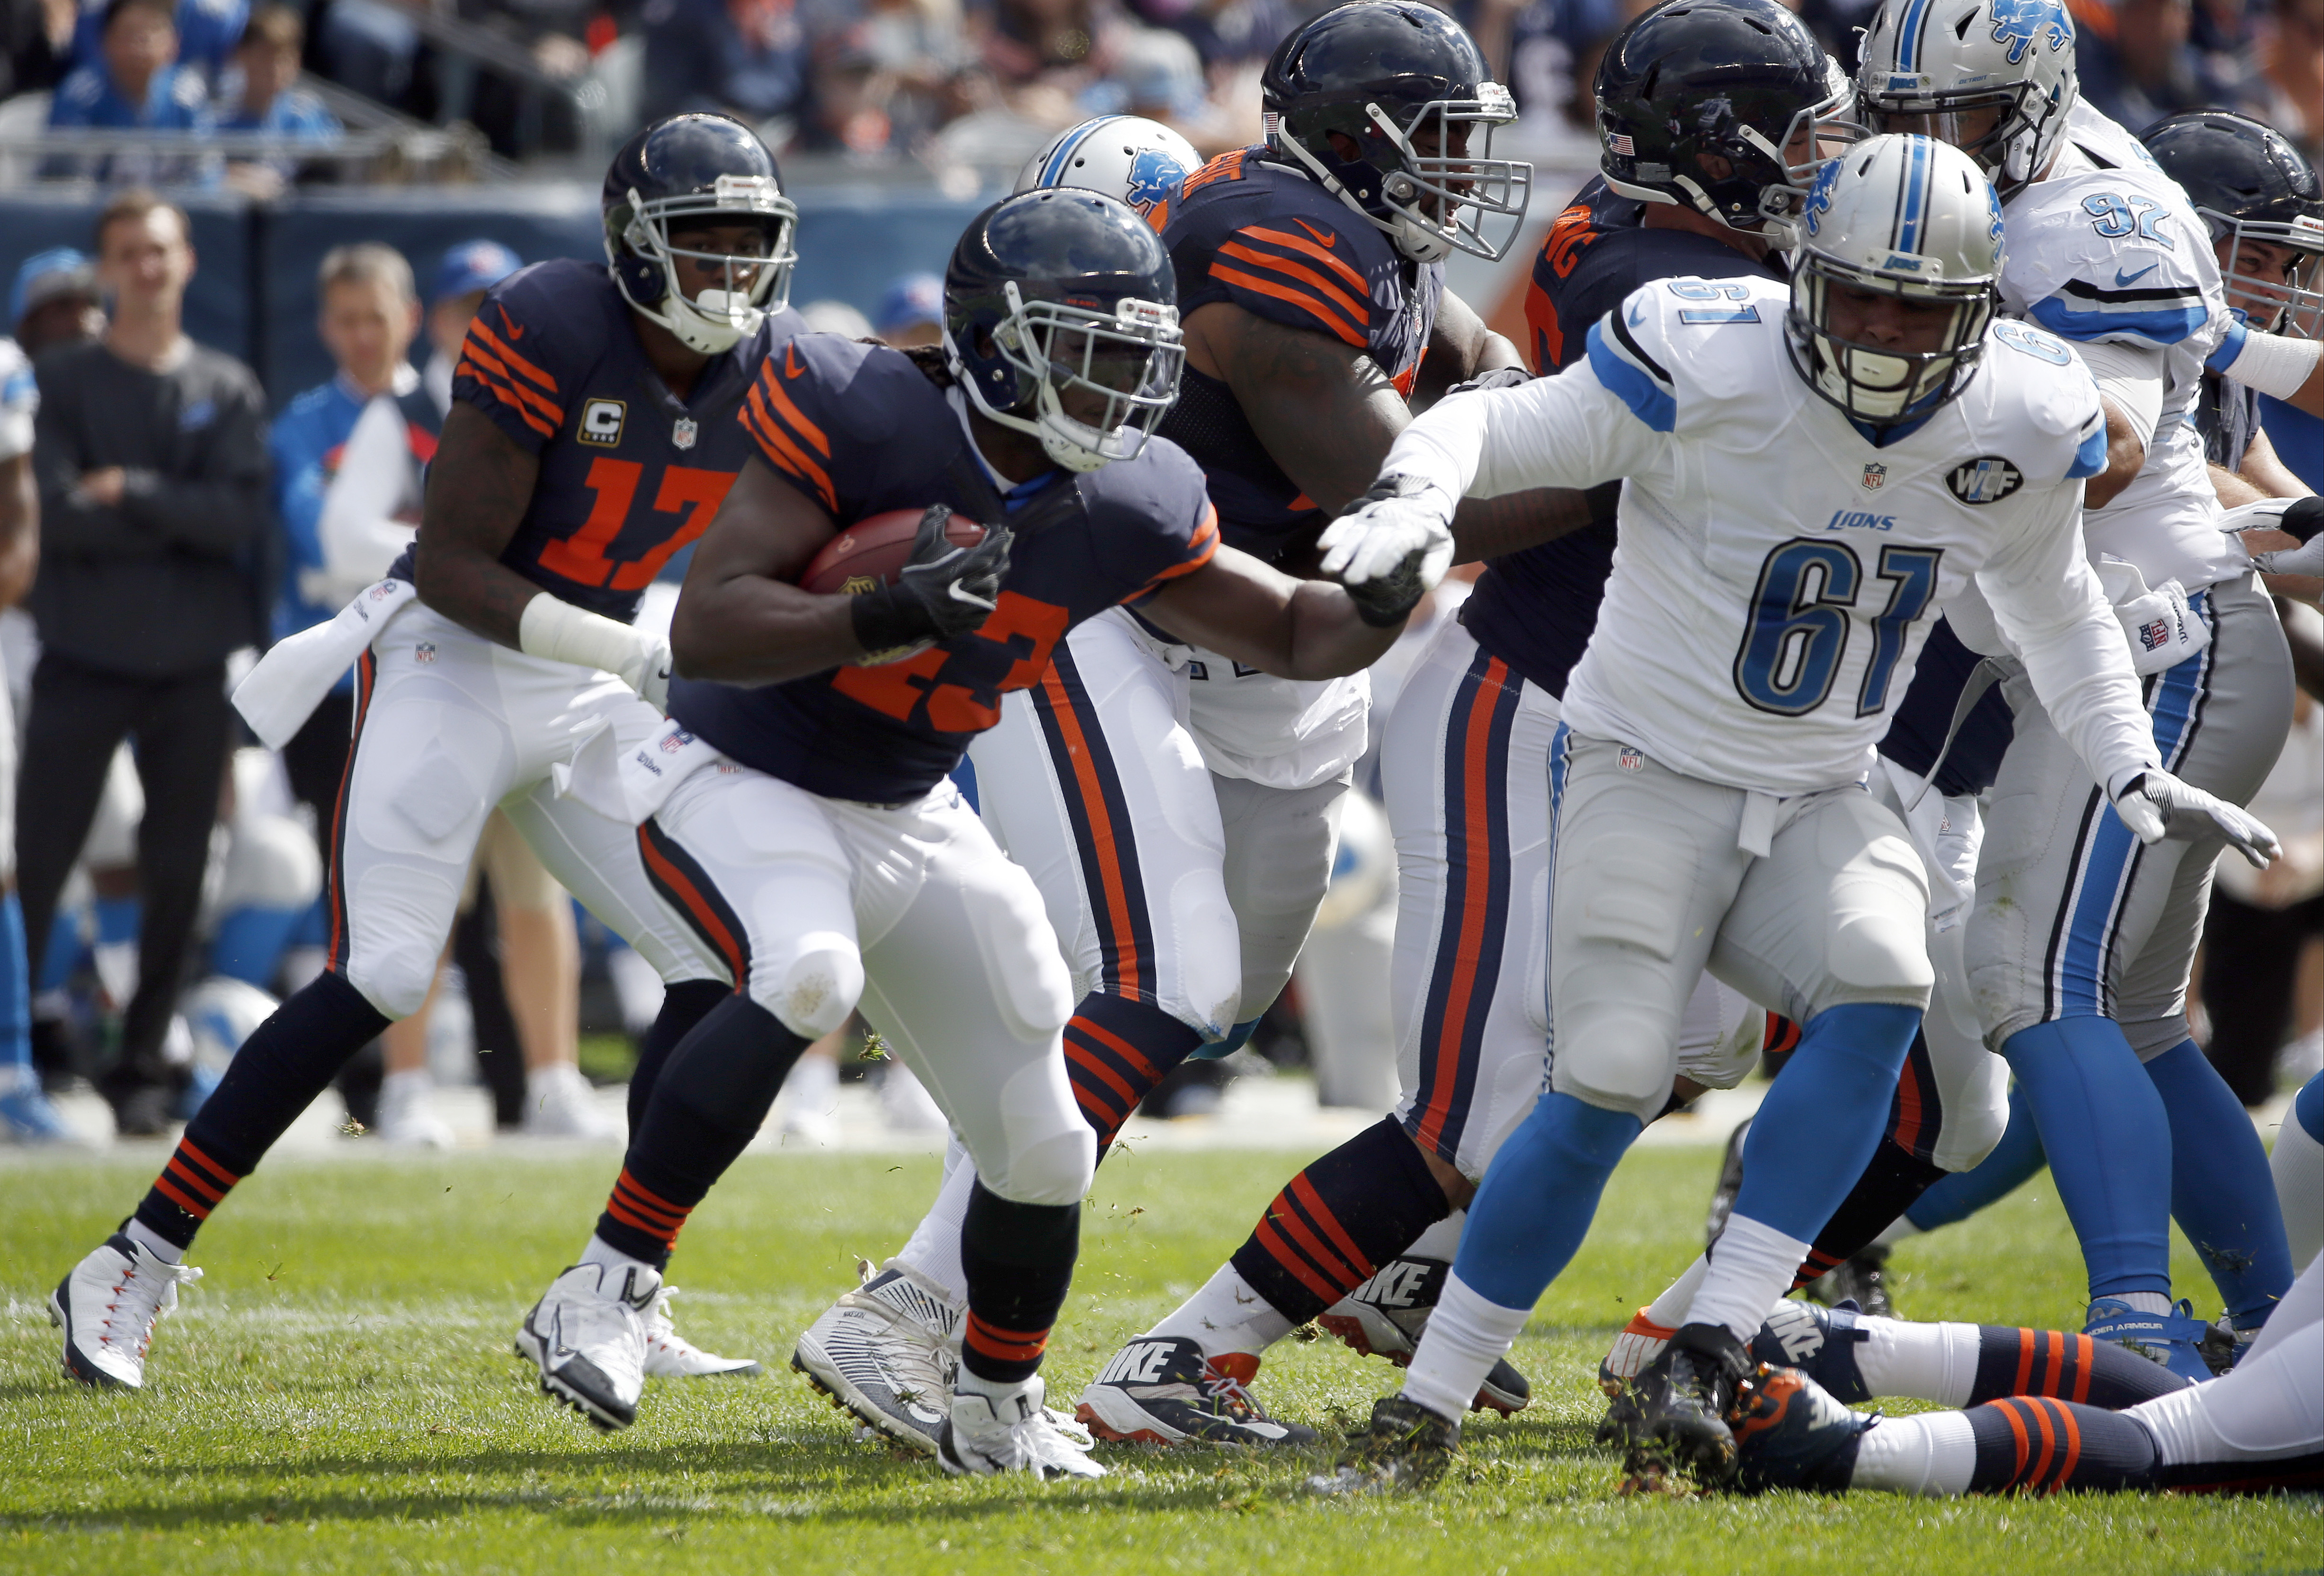 FILE - In this Oct. 2, 2016, file photo, Chicago Bears running back Joique Bell (43) runs against Detroit Lions defensive end Kerry Hyder (61) during the first half of an NFL football game in Chicago. Desperate for depth in the backfield, the Detroit Lion